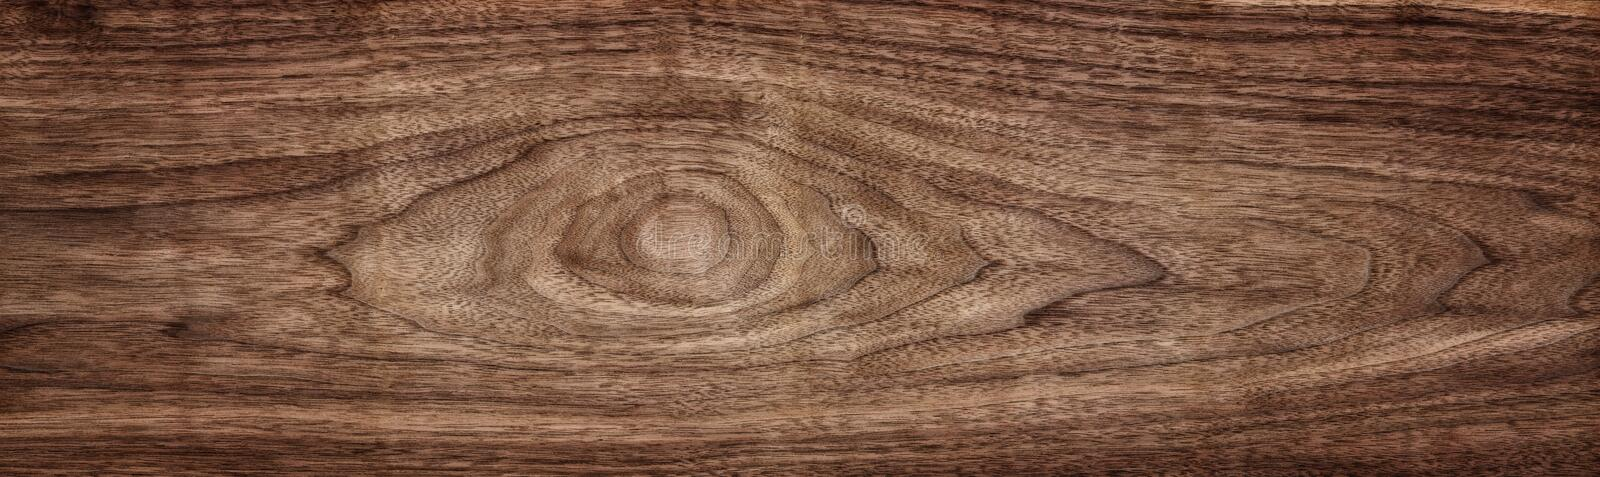 Wood texture background surface with old natural pattern royalty free stock images